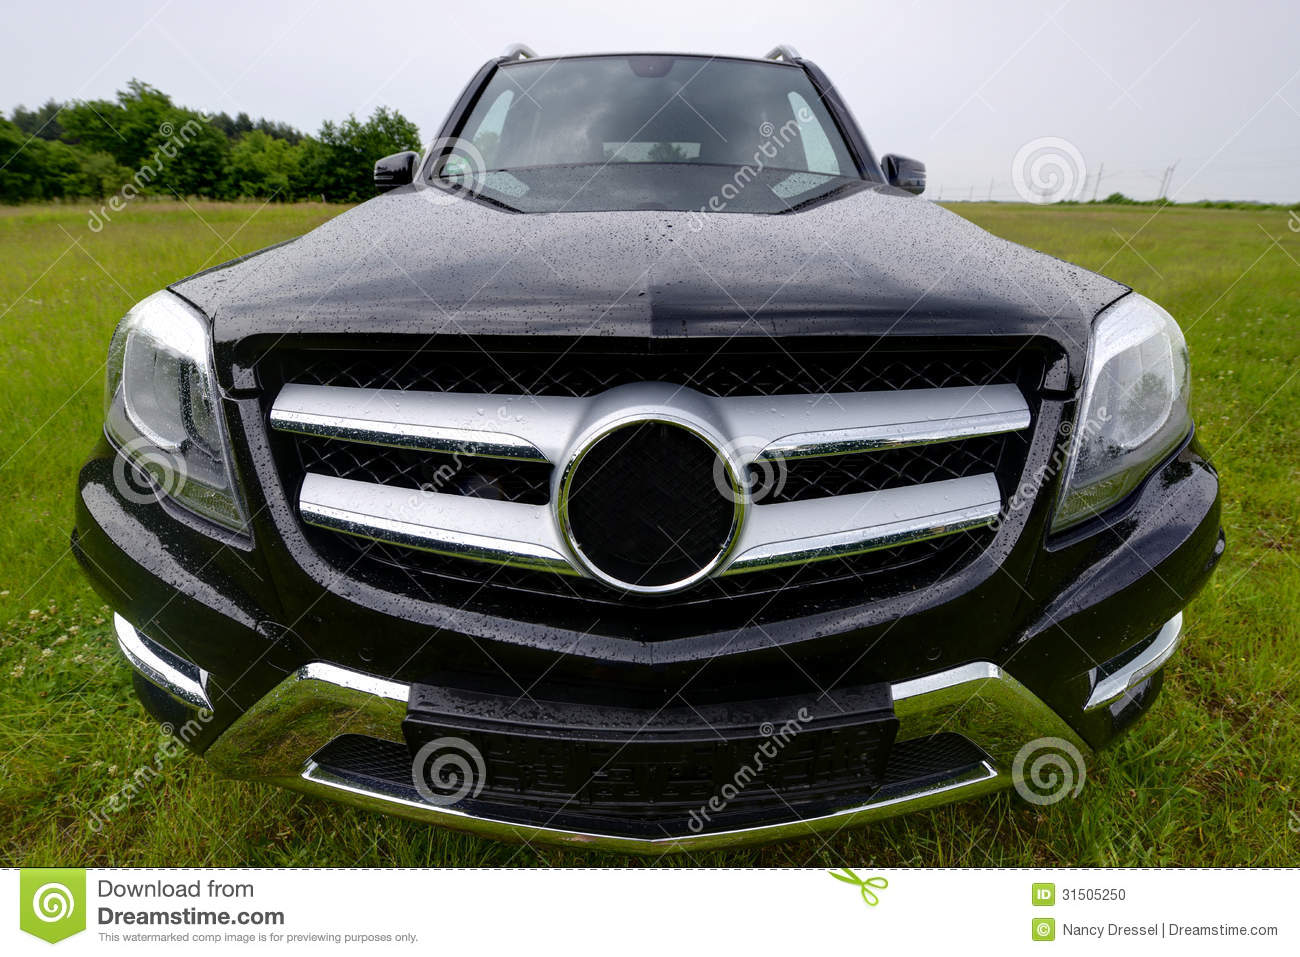 Brand new mercedes benz glk suv stock photo image 31505250 for Brand new mercedes benz price